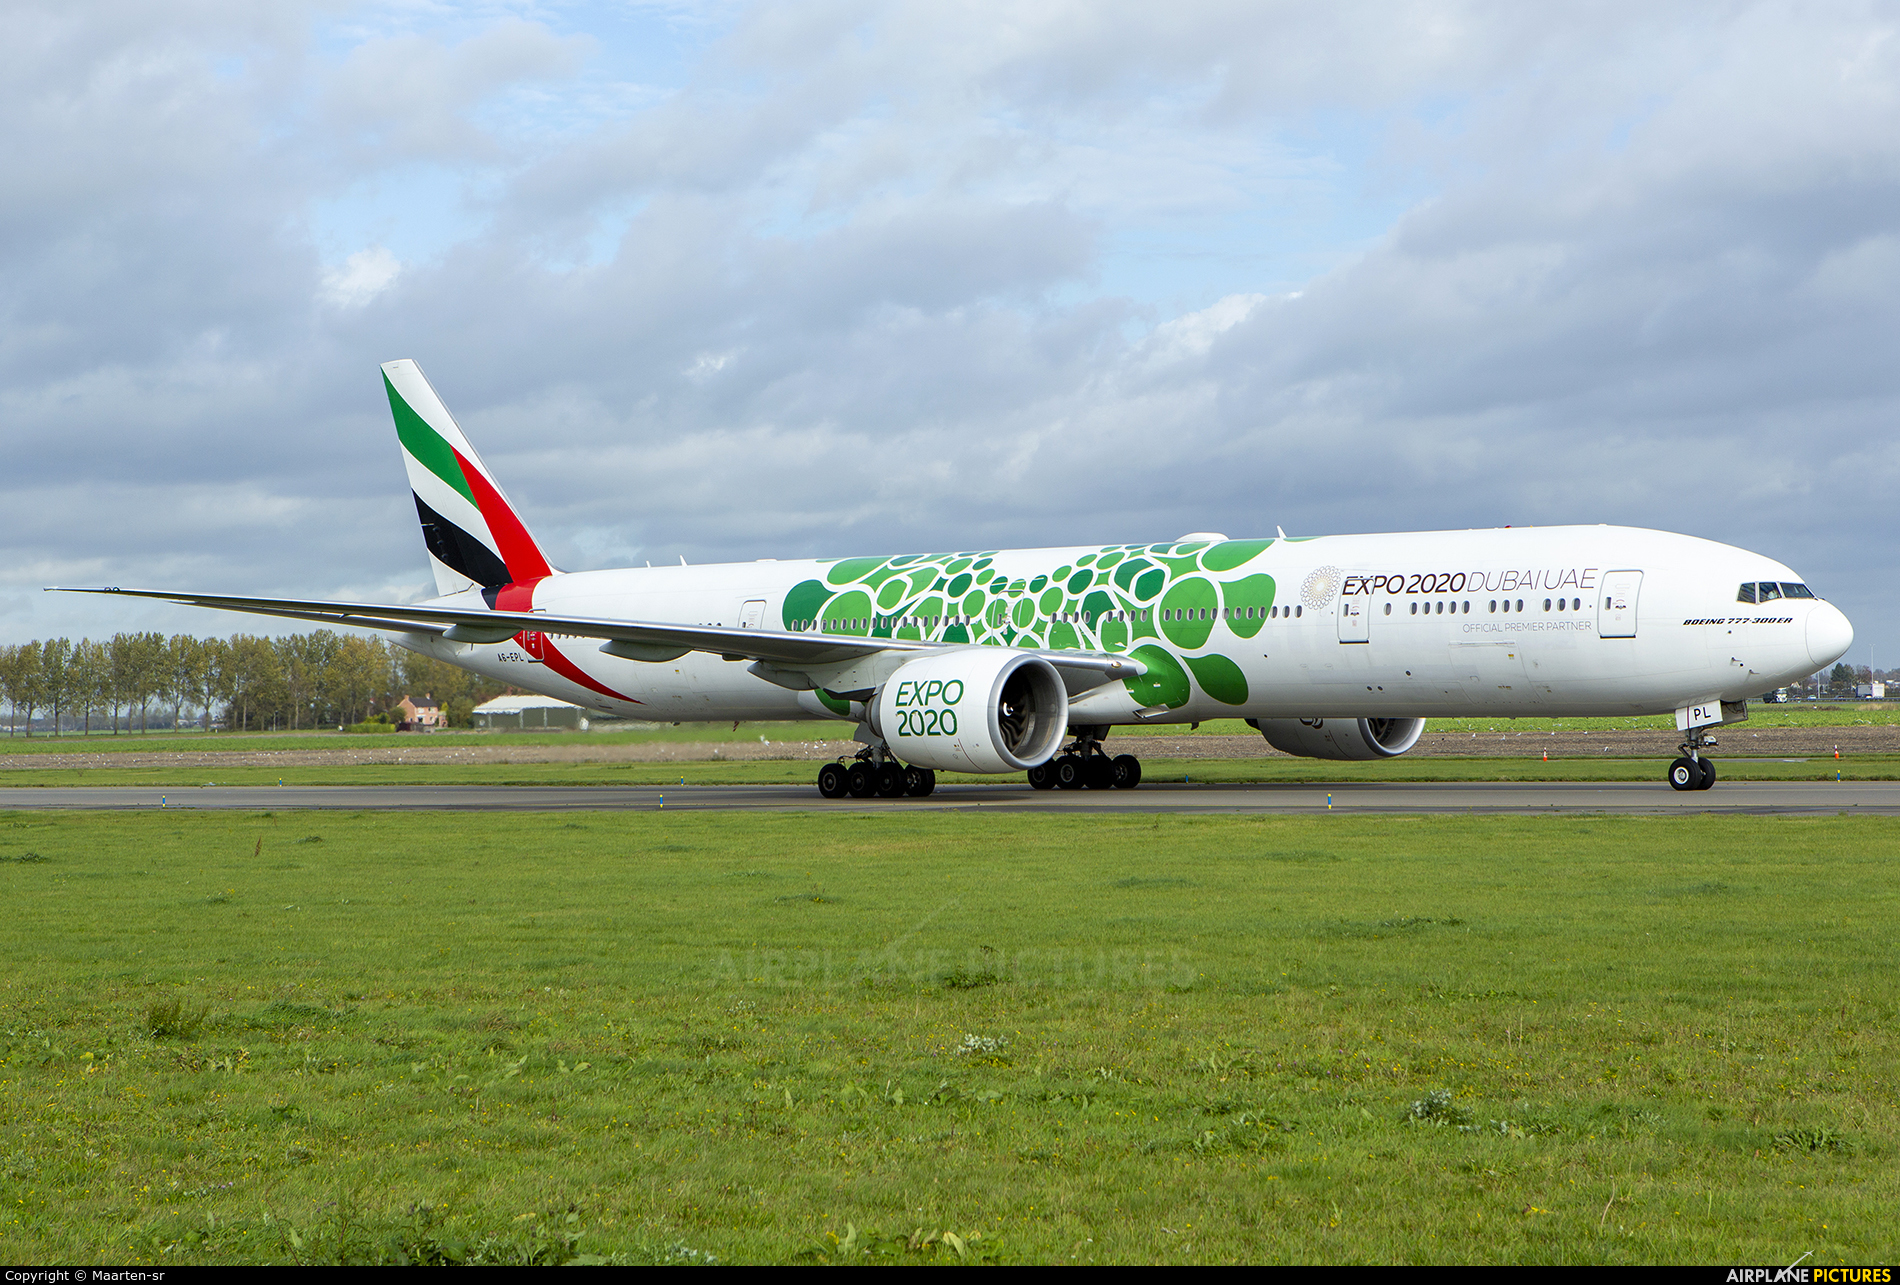 Emirates Airlines A6-EPL aircraft at Amsterdam - Schiphol